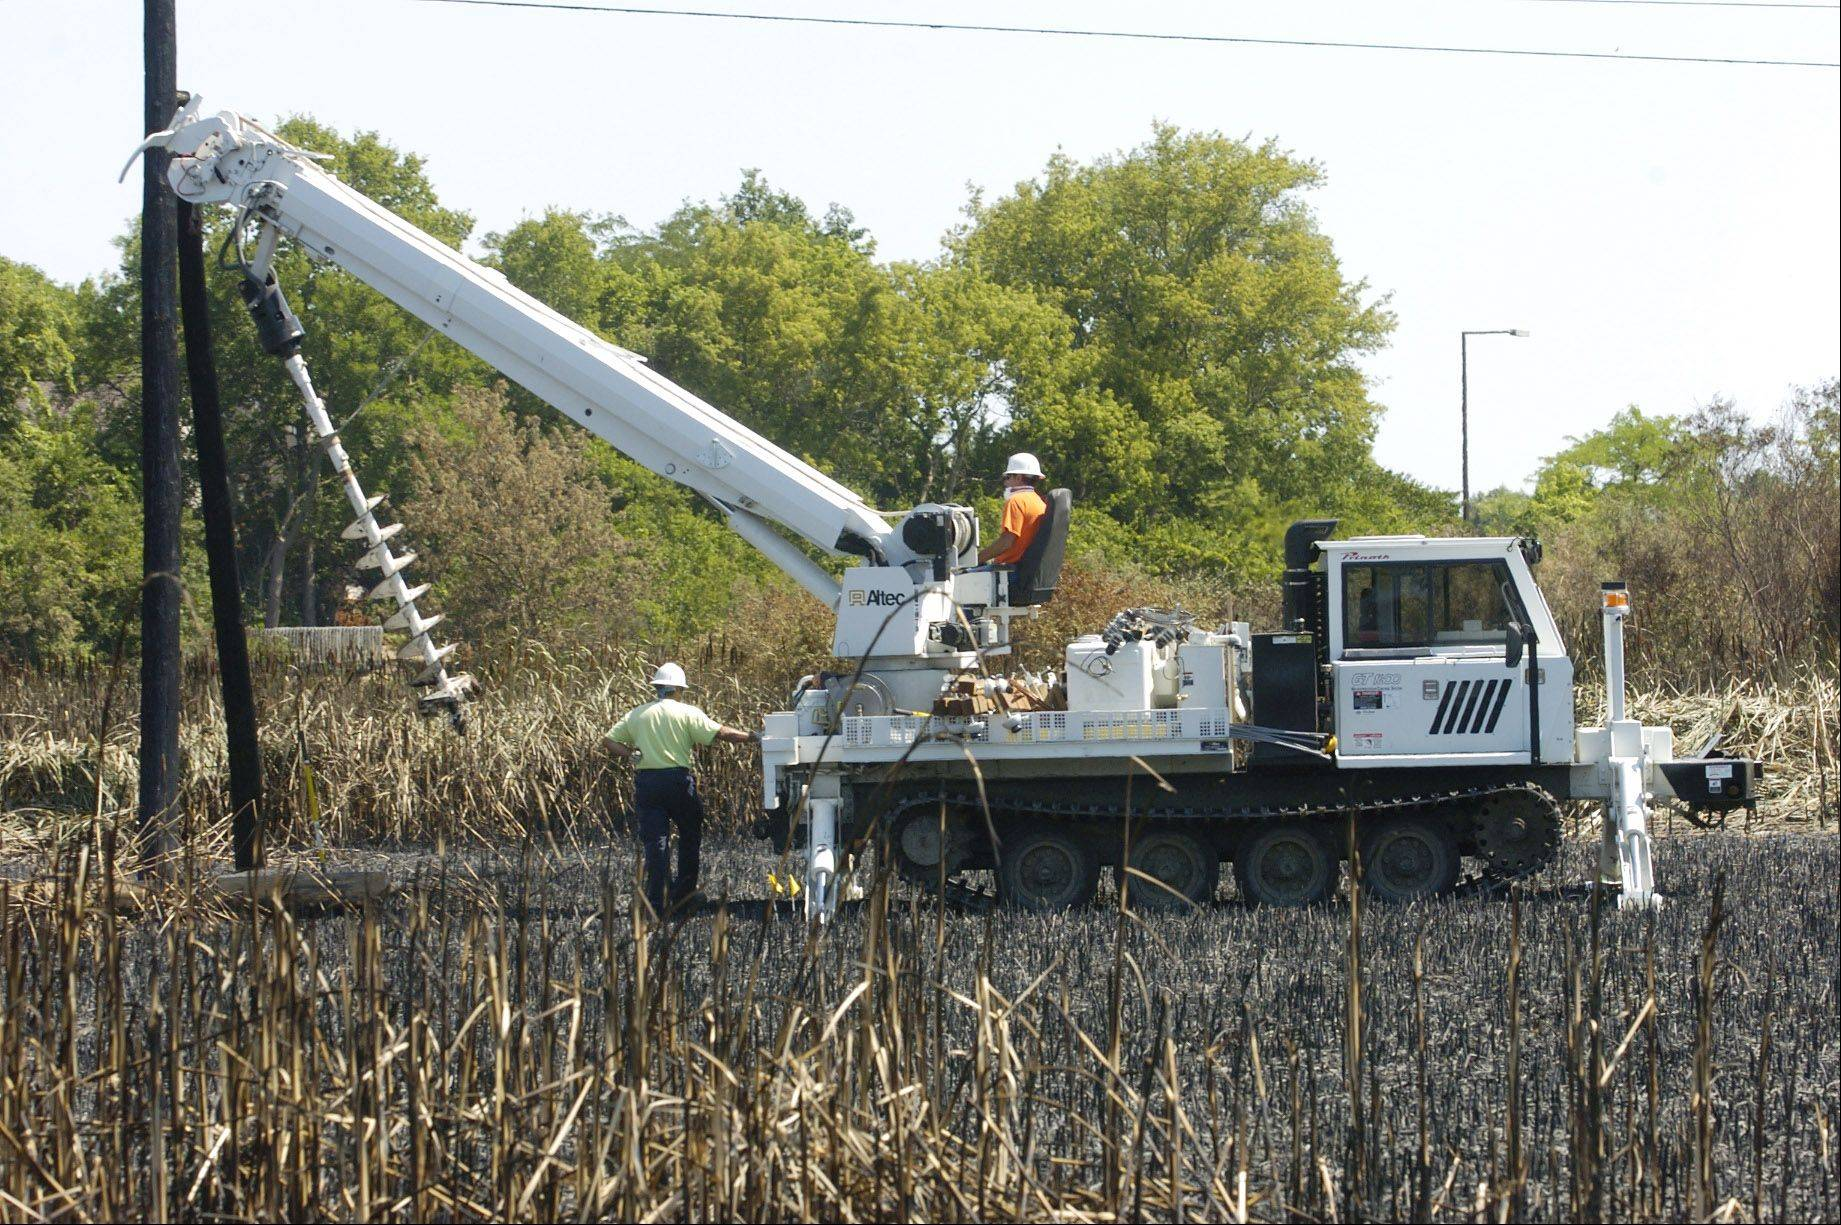 Earlier this week, Com-Ed crews replace utility poles damaged in the Buffalo Grove brush fire.